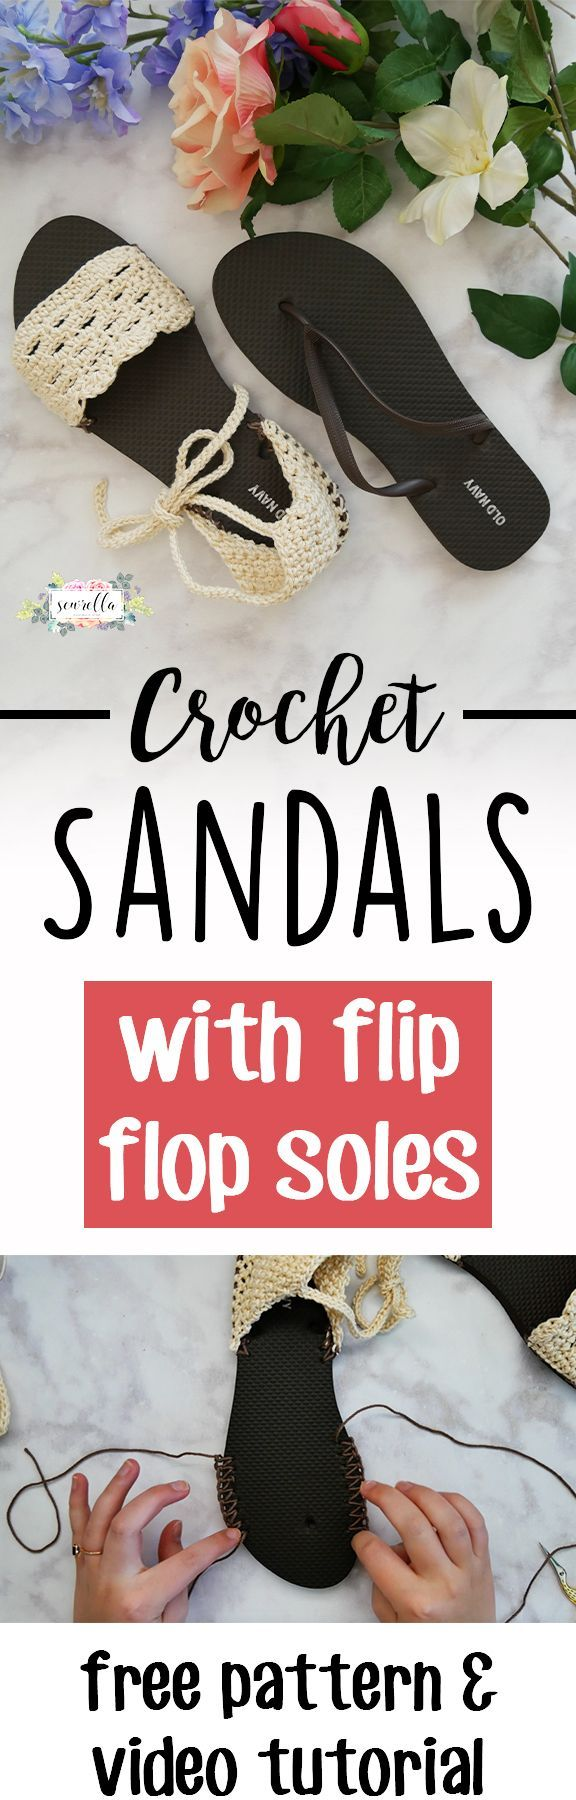 752cc1392 Learn to crochet sandals with flip flop soles with this easy free pattern    video tutorial. Making shoes has never been so easy!